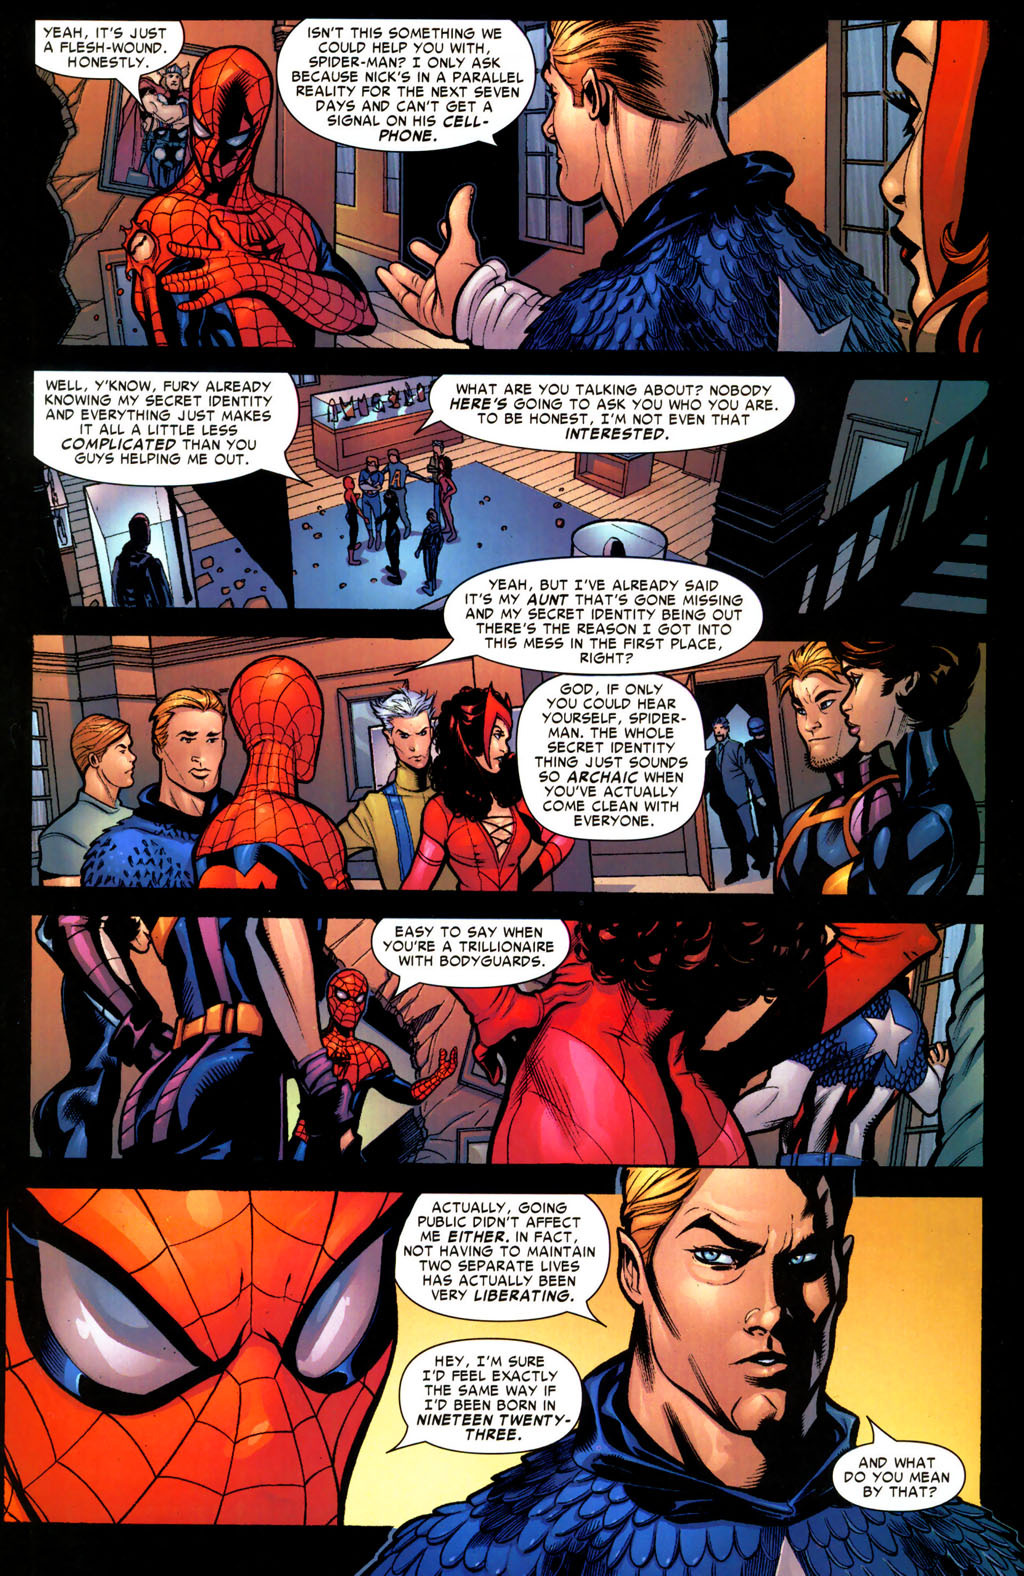 scans_daily | Captain America's principles on revealing ... - photo#3